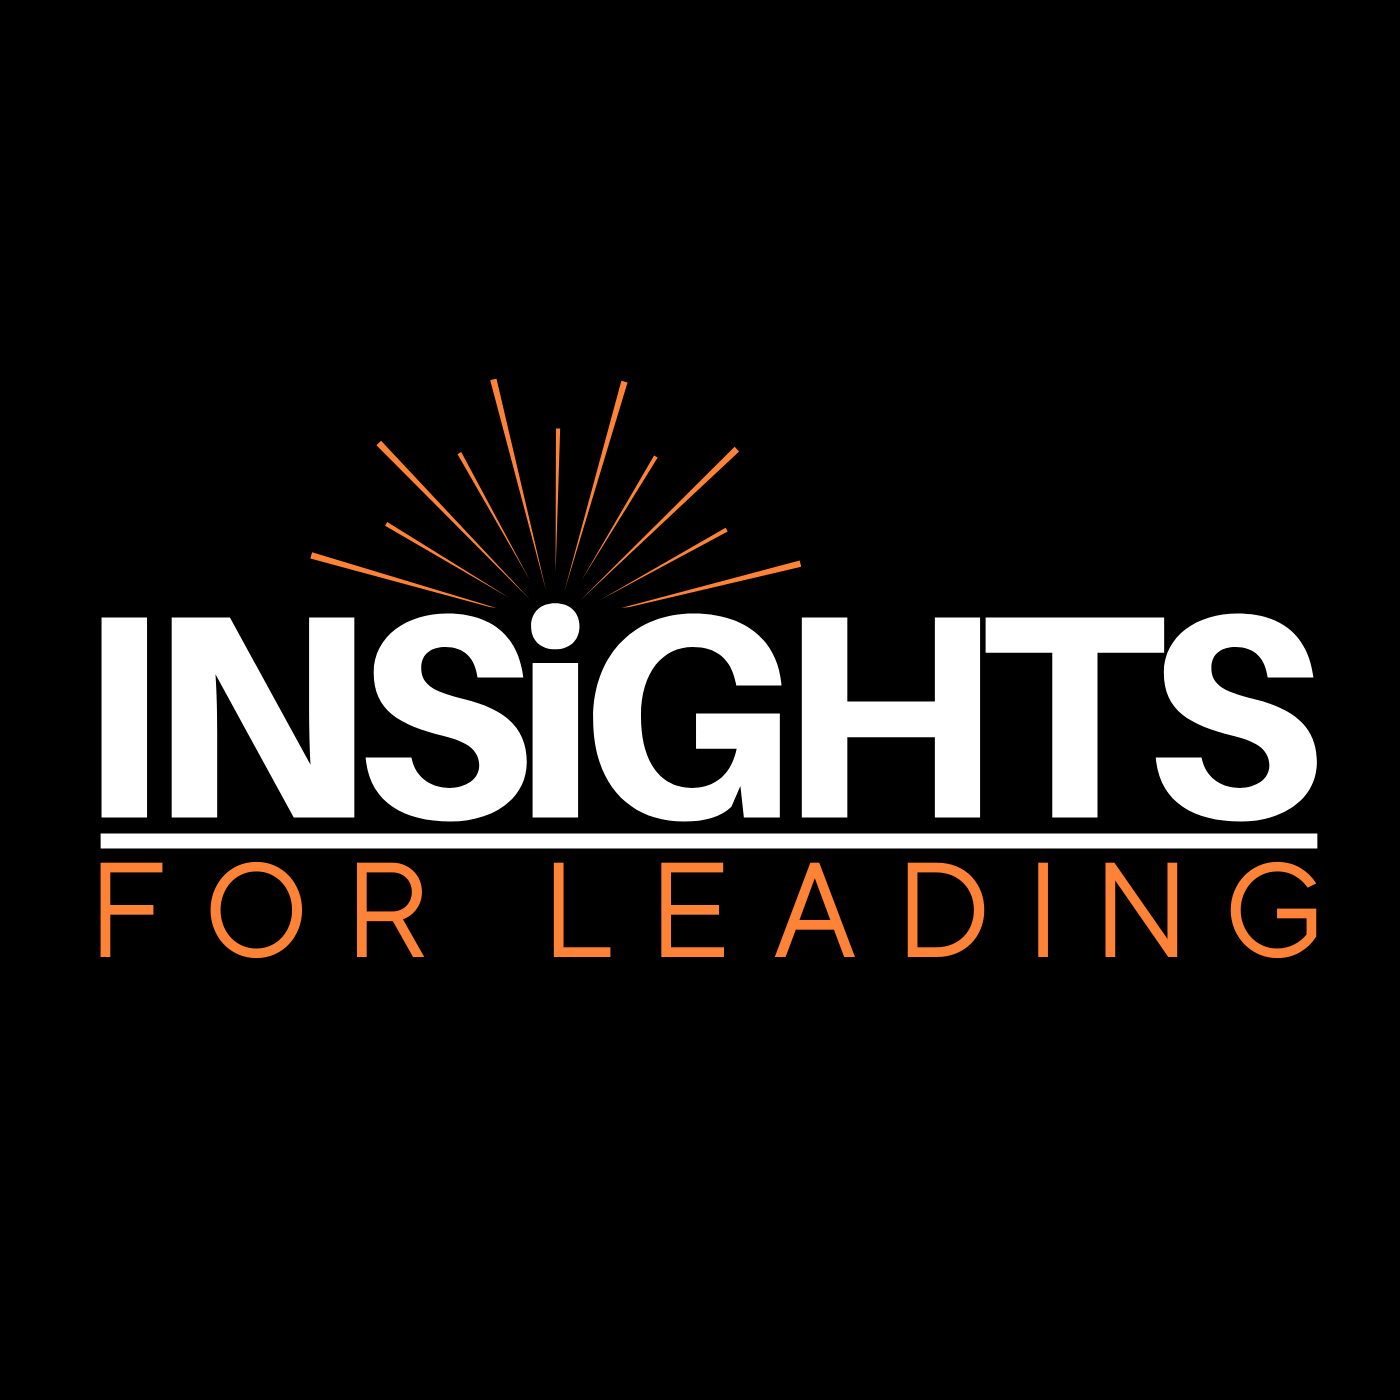 Insights for Leading